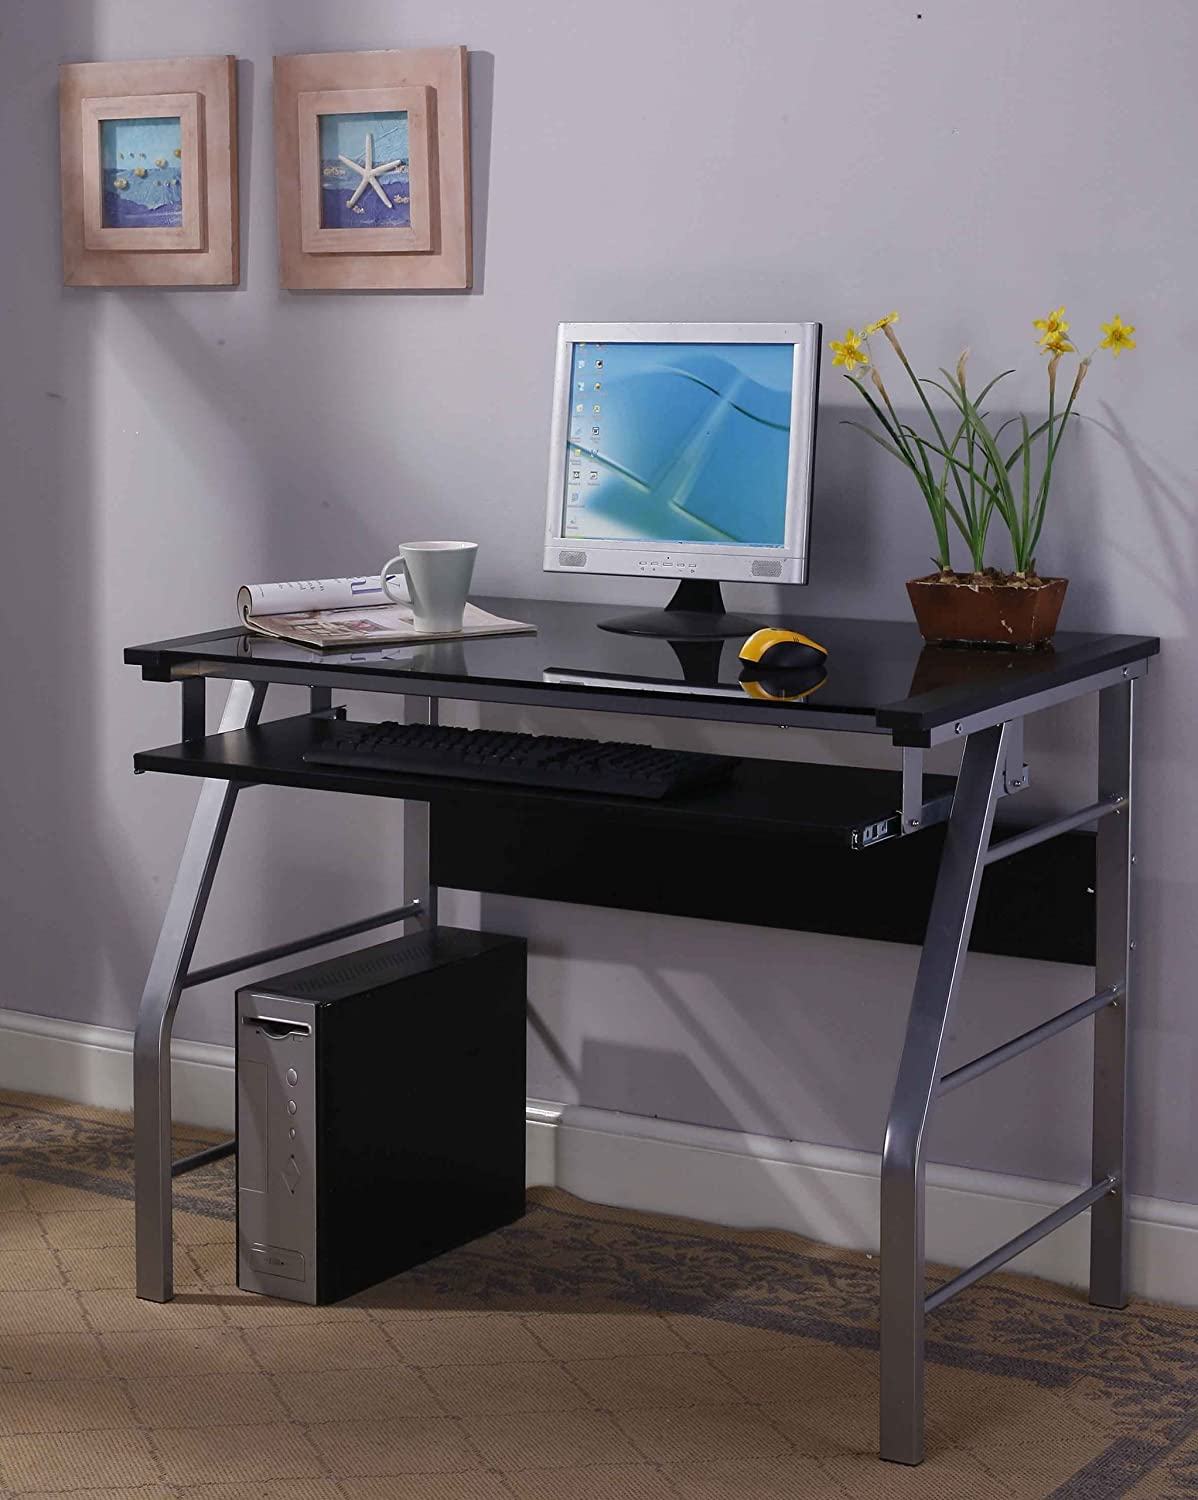 Amazon com  King s Brand 2950 Glass and Metal Home Office Computer  Workstation Desk Table  Silver Finish  Kitchen   Dining. Amazon com  King s Brand 2950 Glass and Metal Home Office Computer